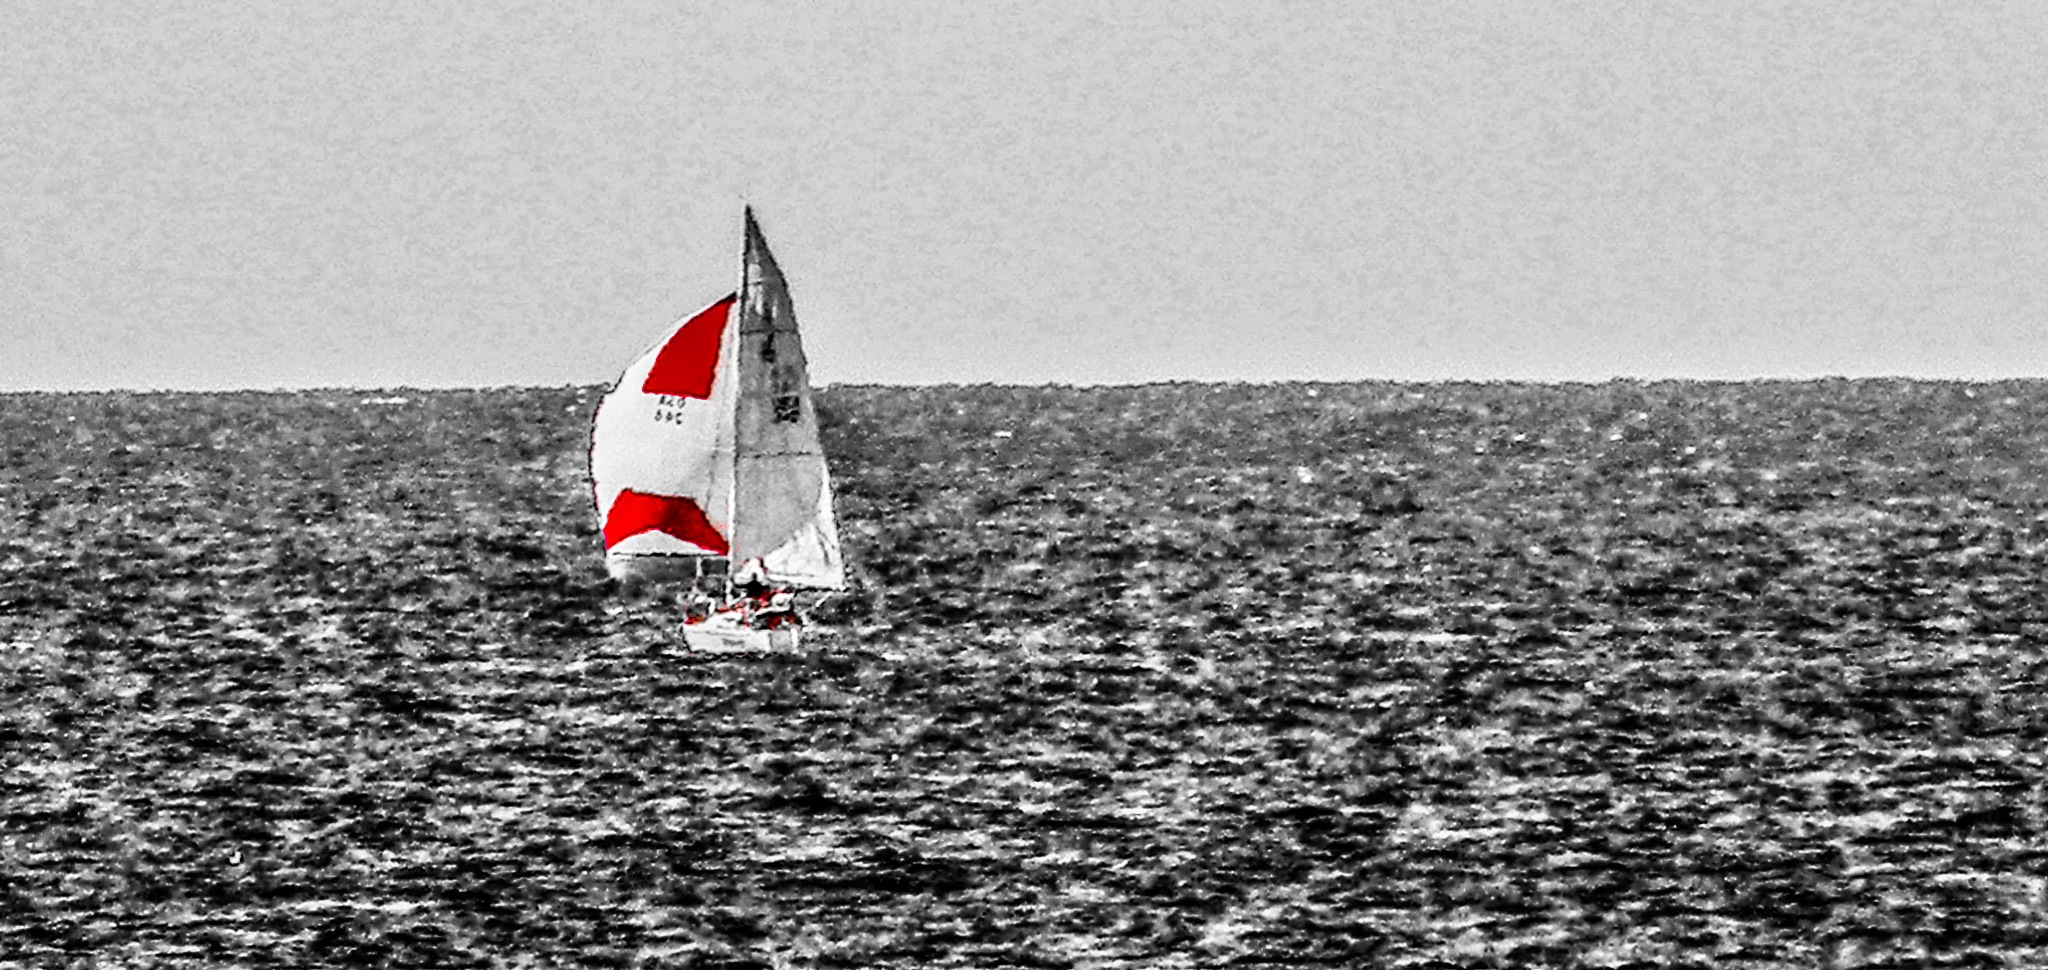 ..wind in her sails.. by jediknight